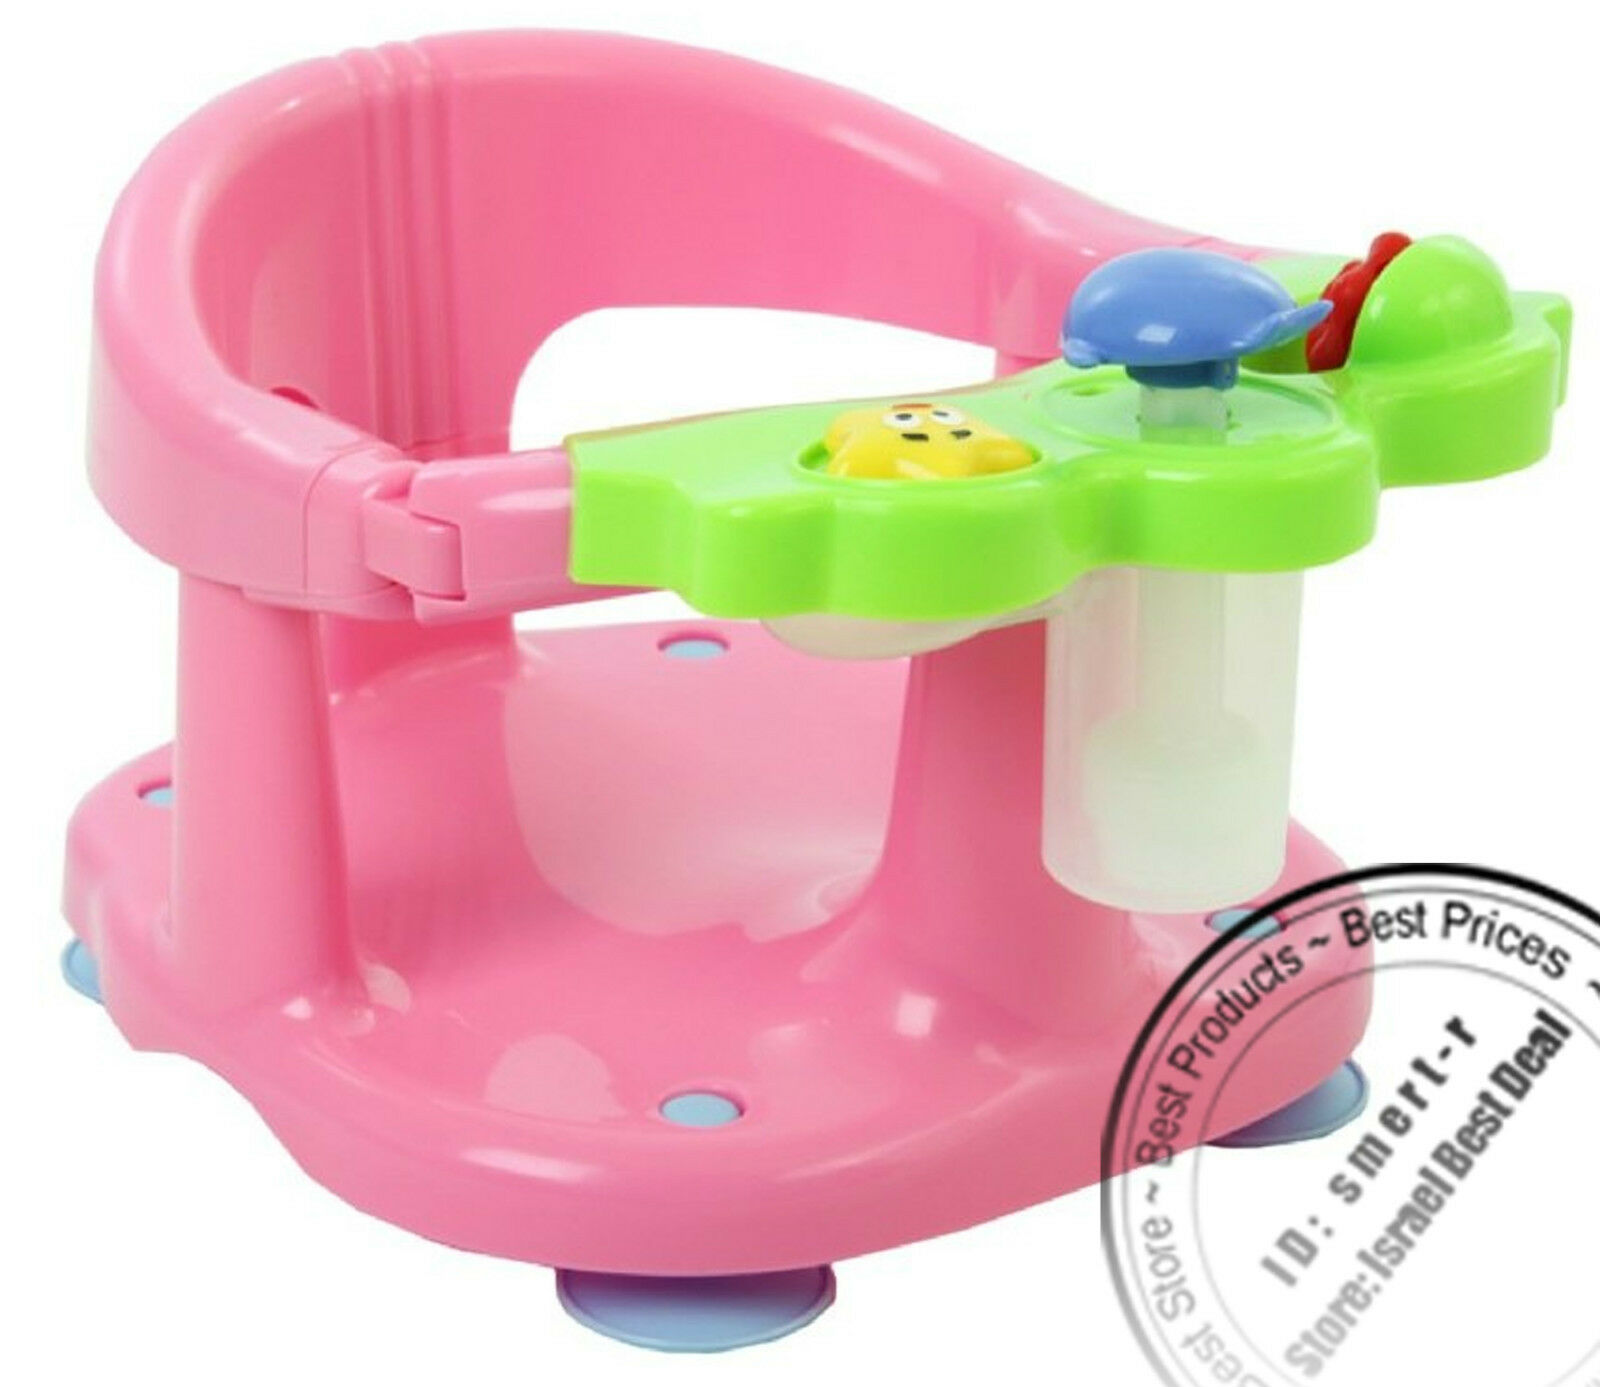 Baby Bath Tub Ring Seat Target. thermobaby juvenile solutions baby ...